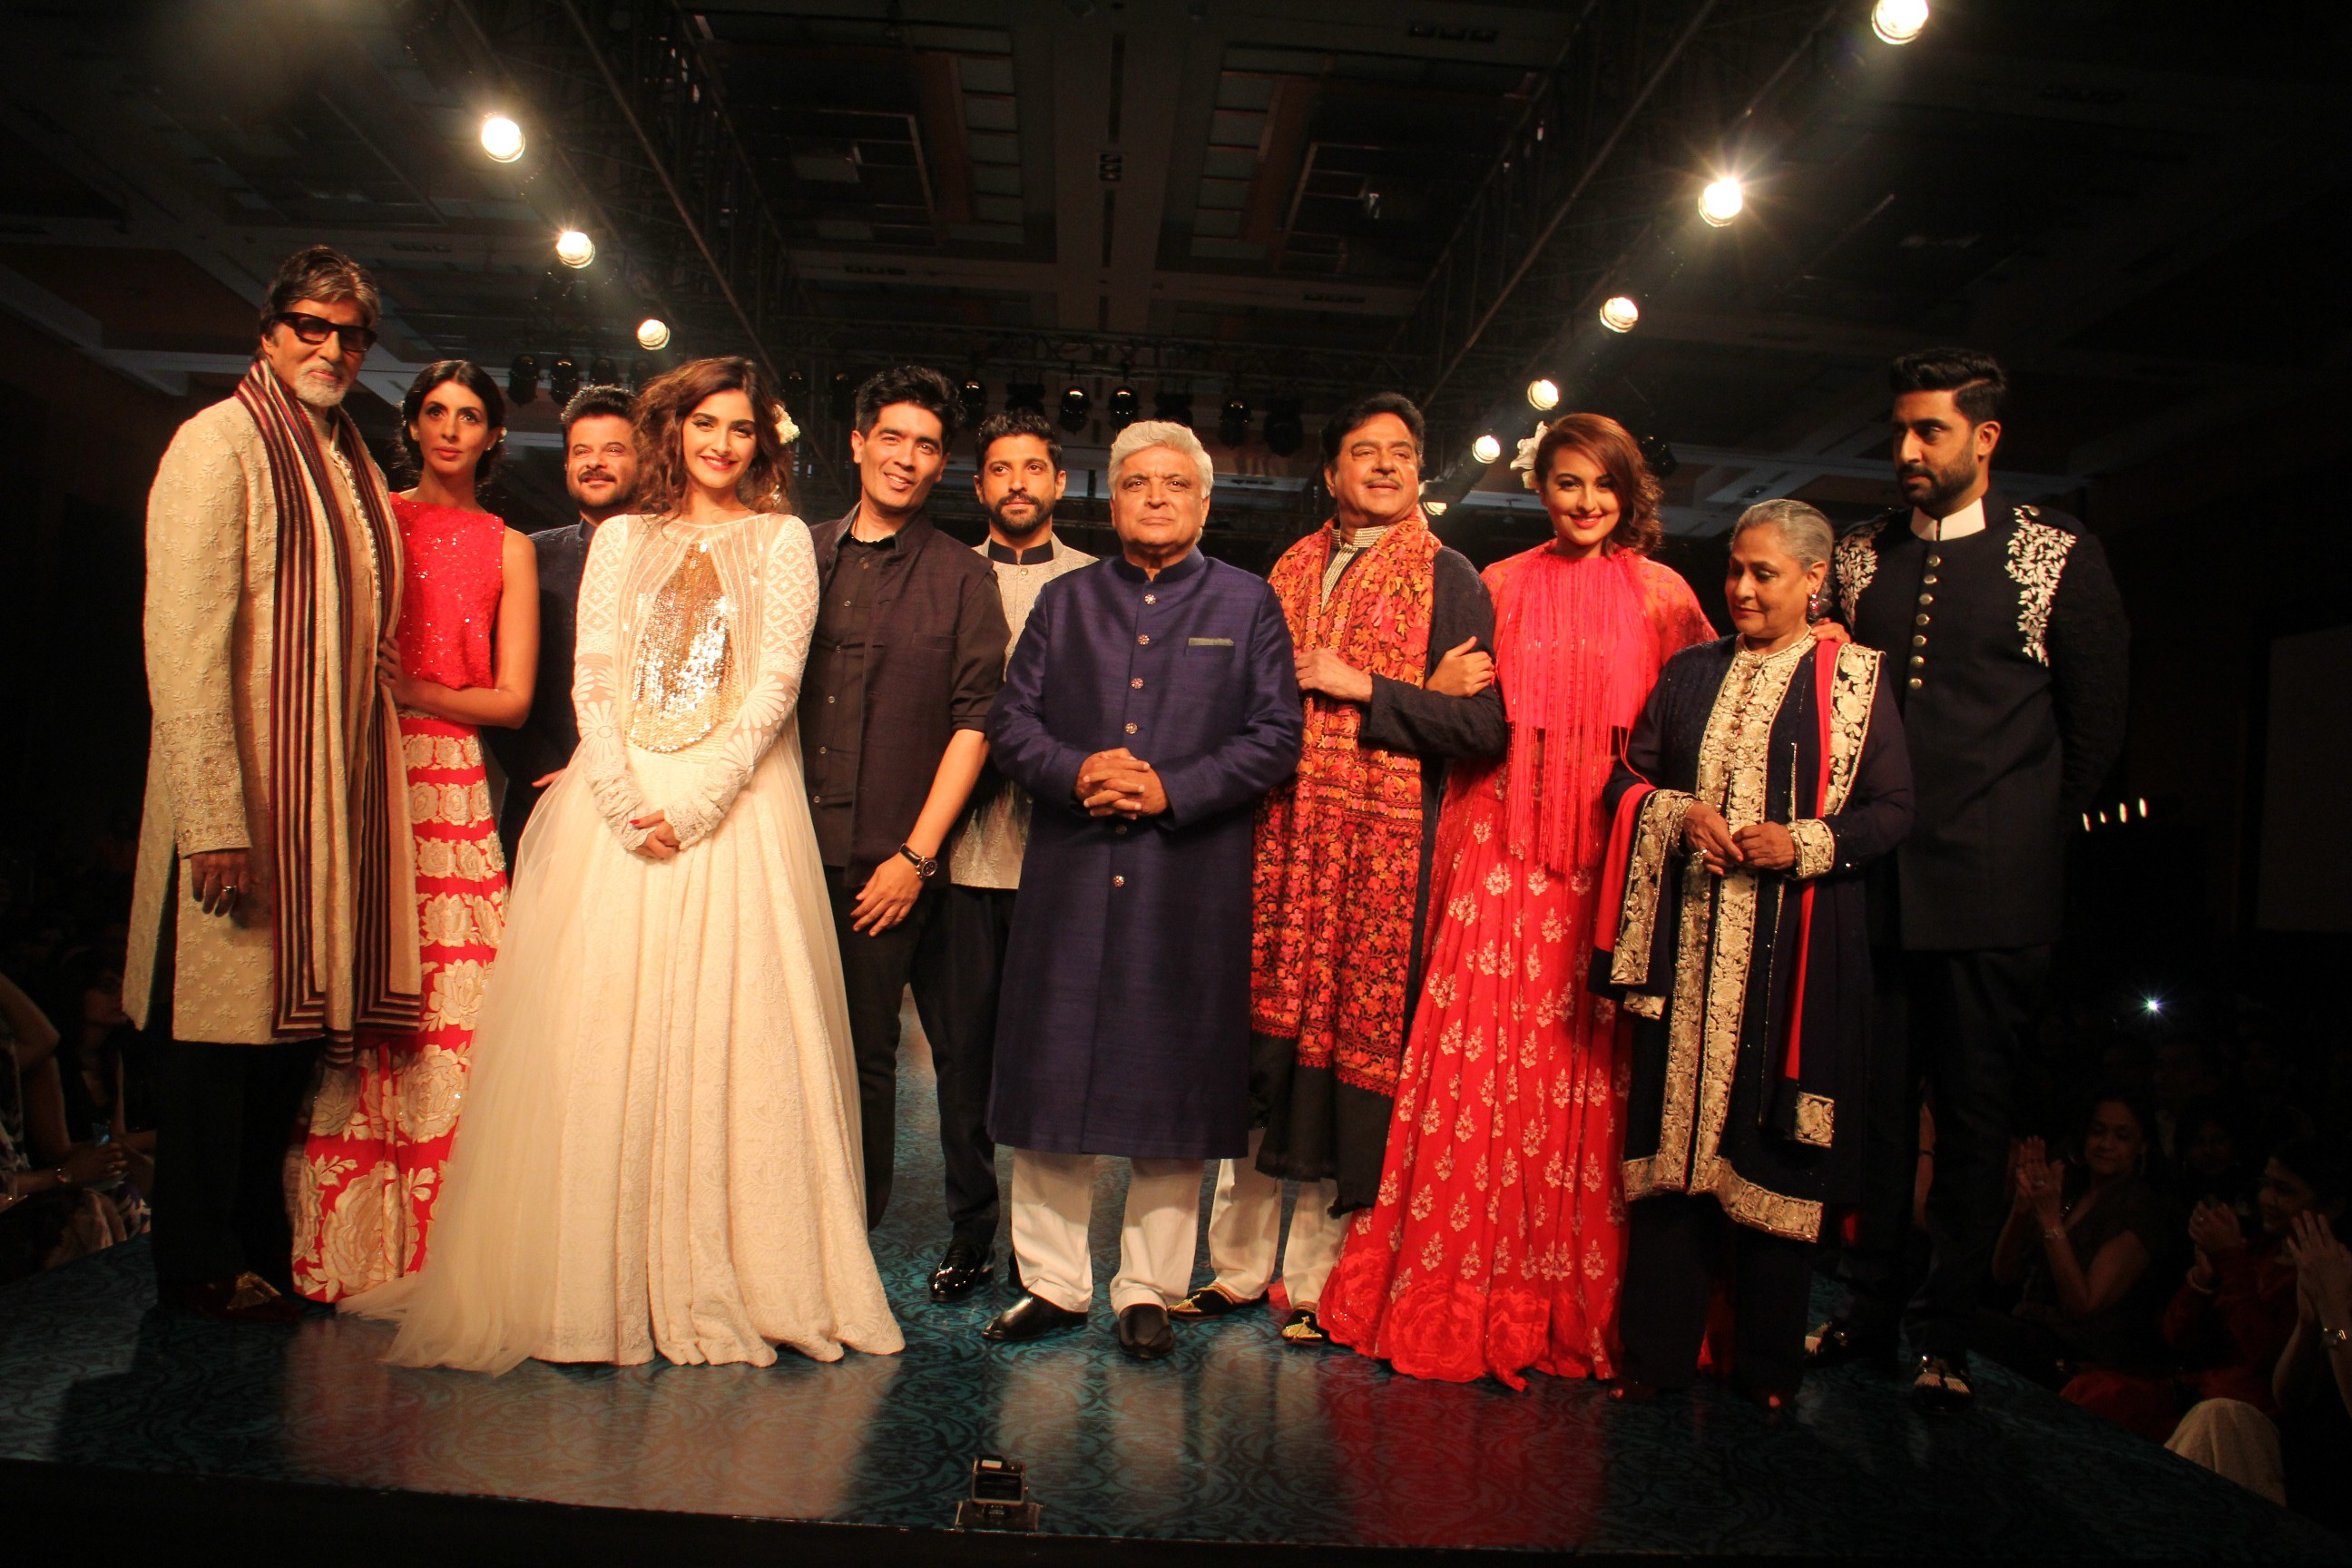 Bachchans, Sinhas, Kapoors catwalk for a cause